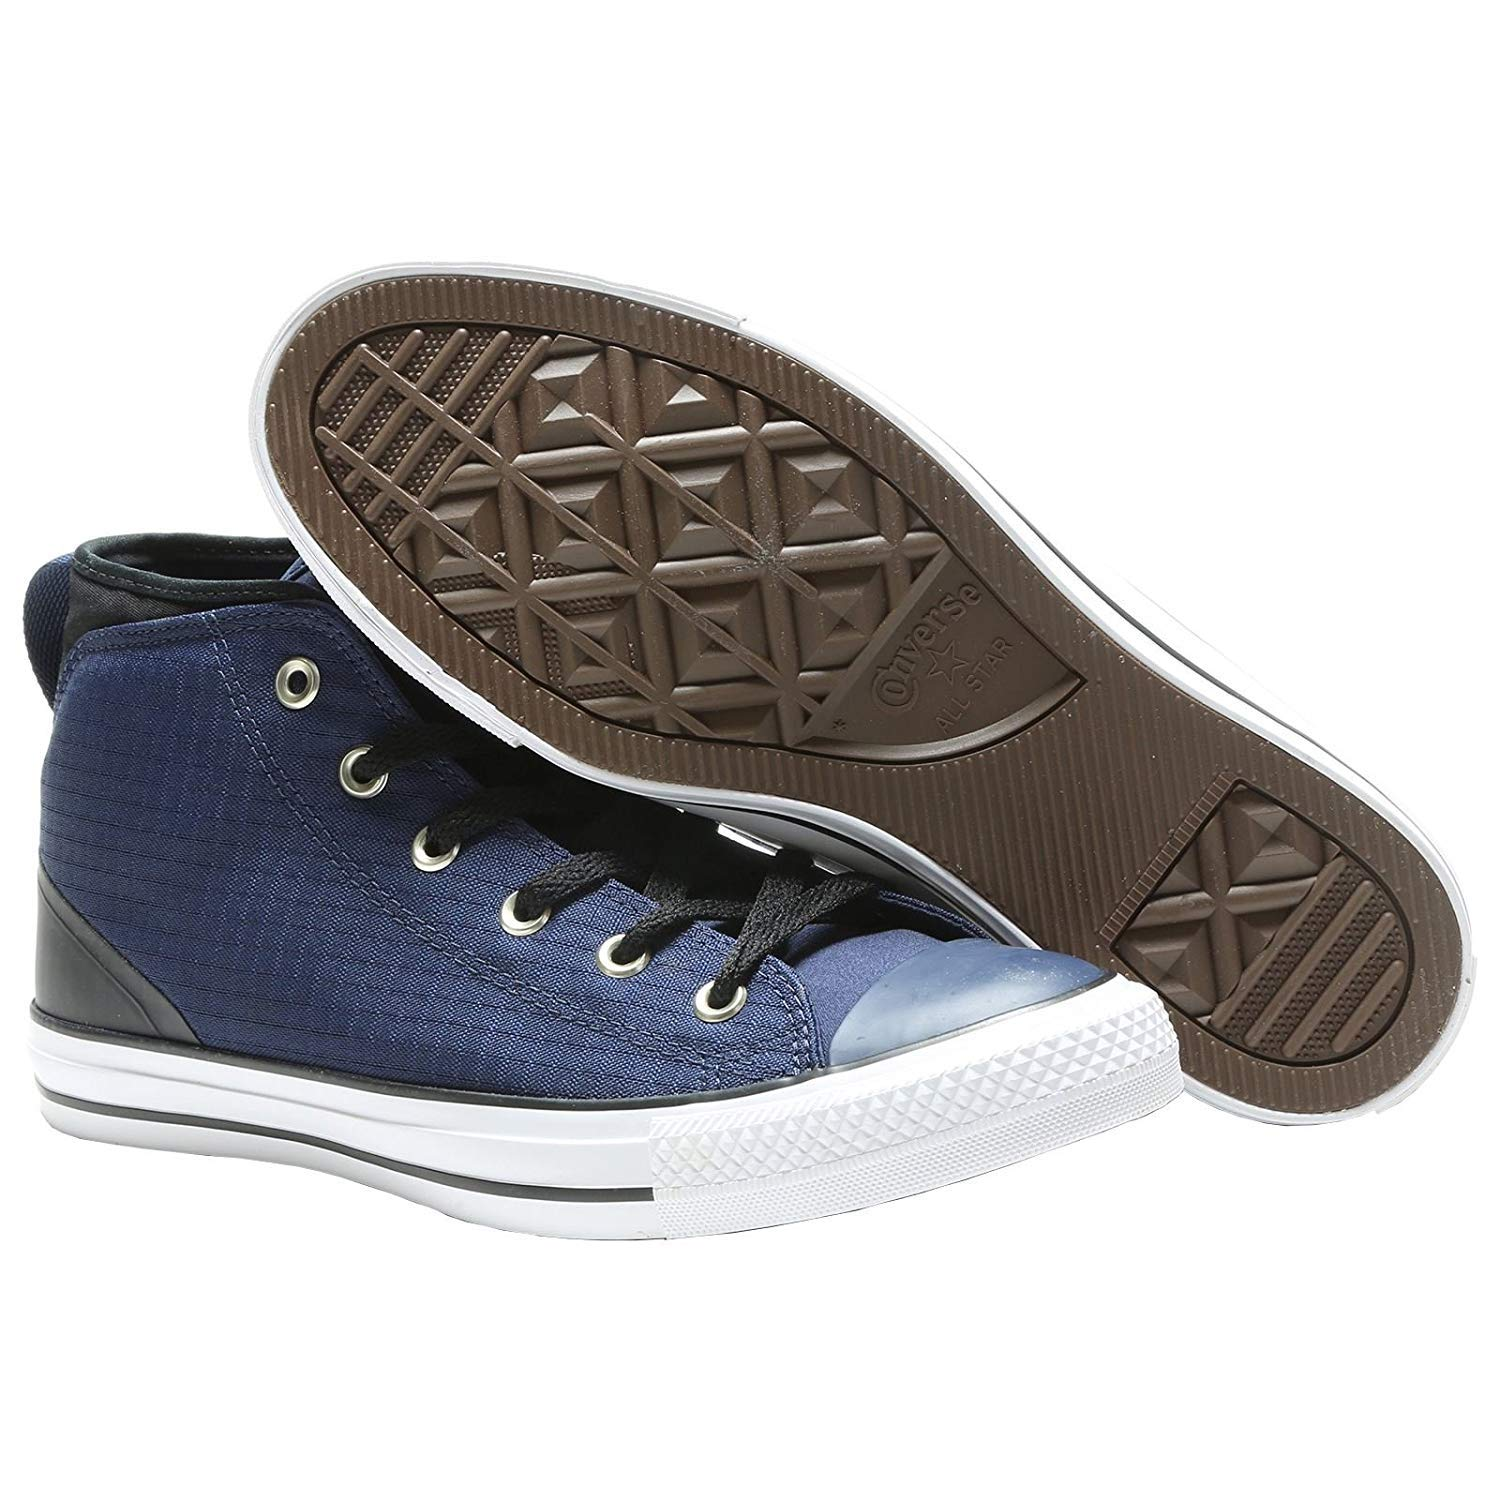 12dcc2a874ef Galleon - Converse Unisex Chuck Taylor All Star Syde Street Mid Sneakers